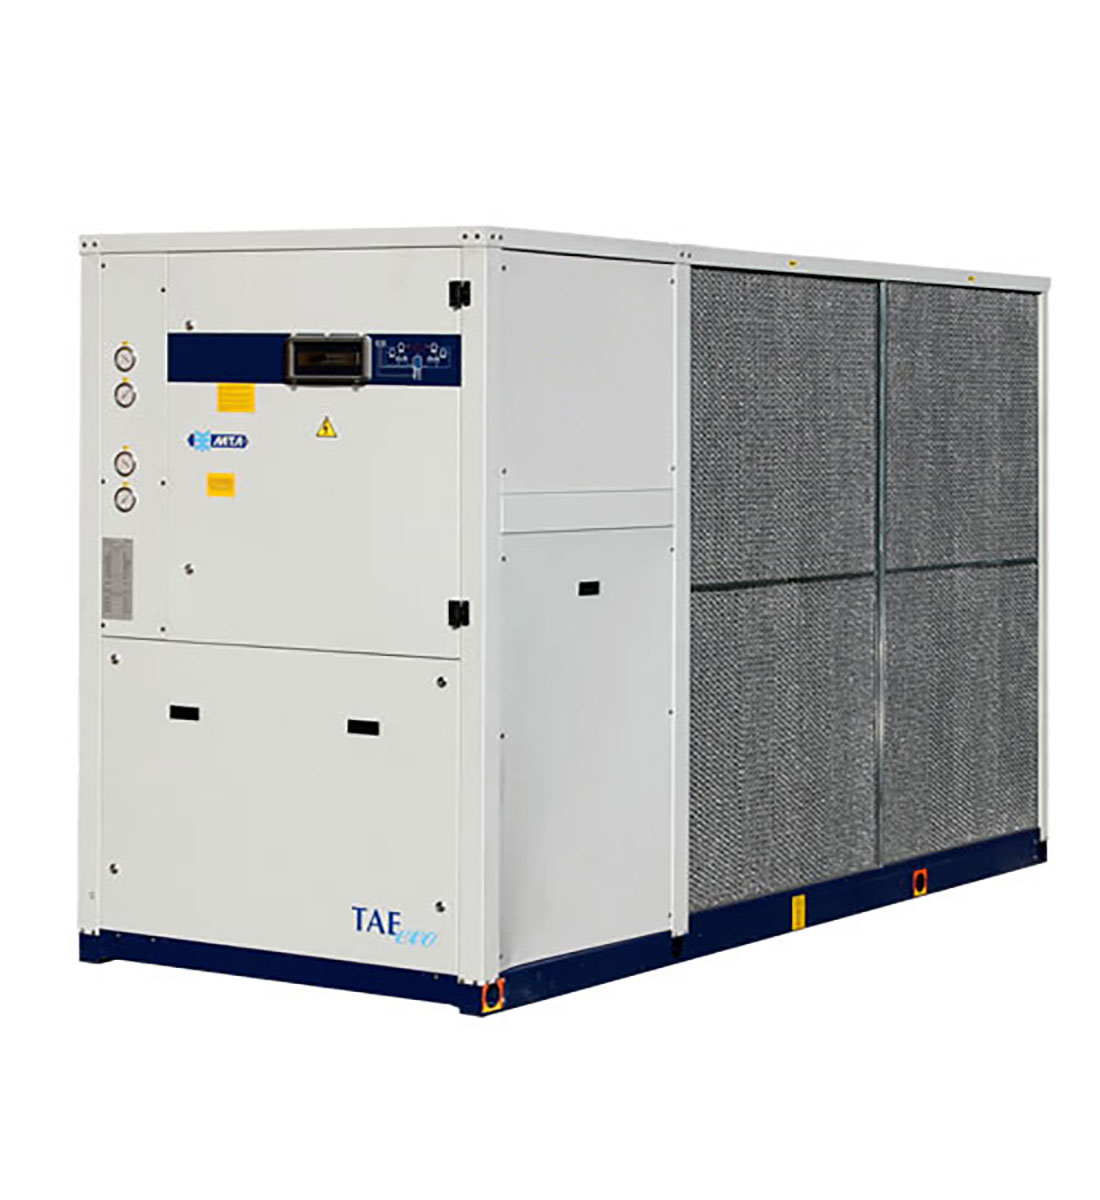 160kW Fluid Chiller MTA